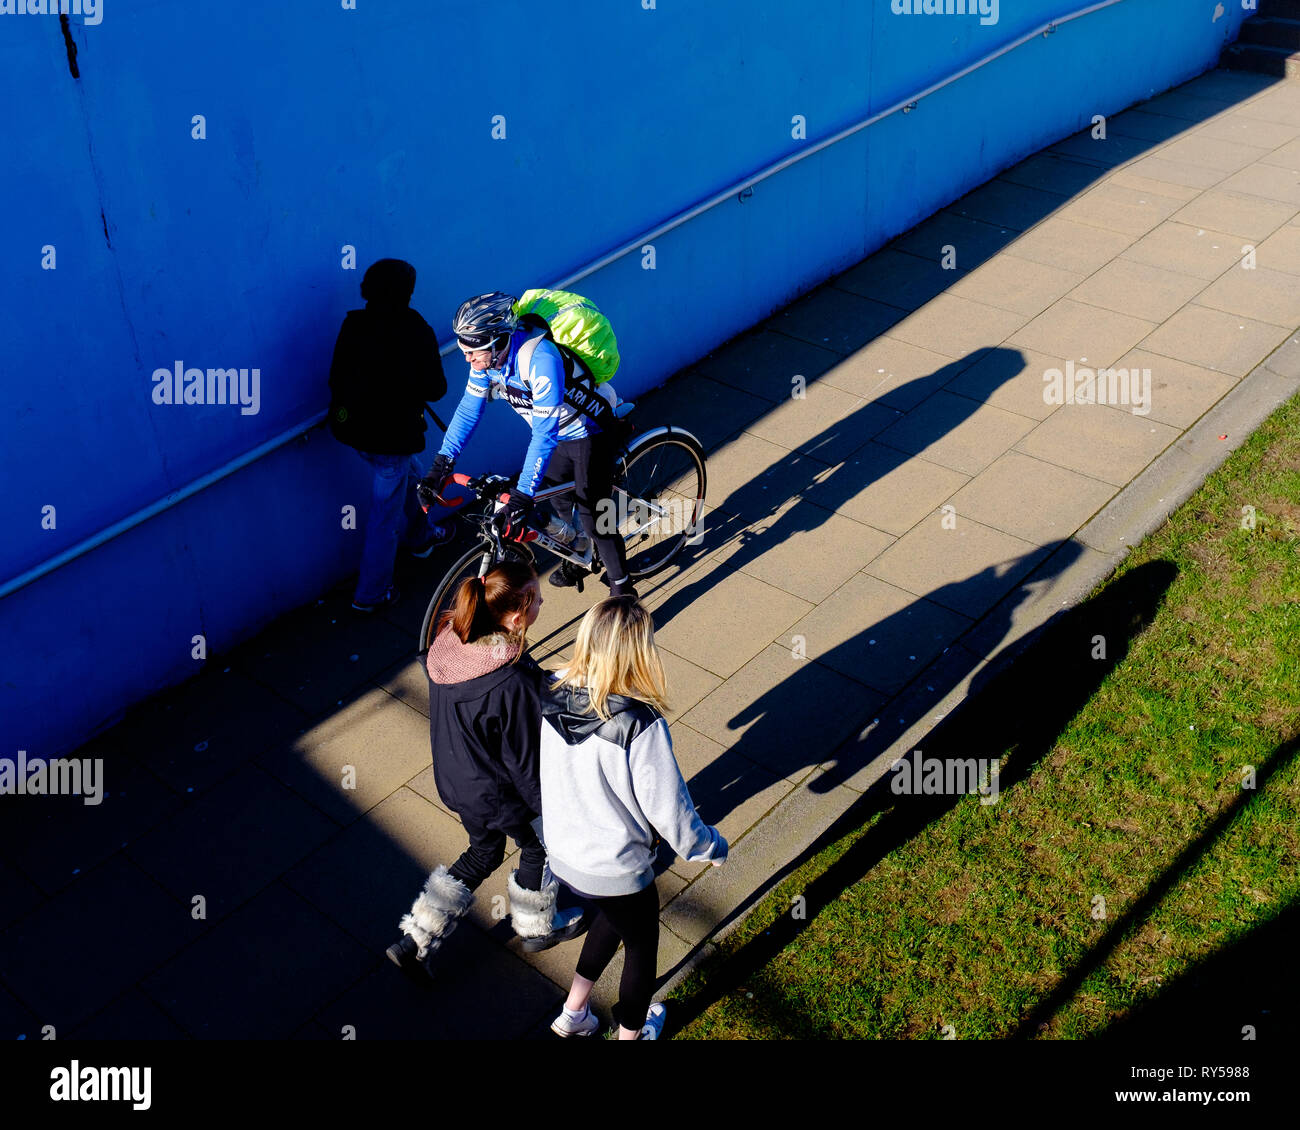 A cyclist enters underpass passing other pedestrians as they leave into bright sunshine,lochaber fort william - Stock Image